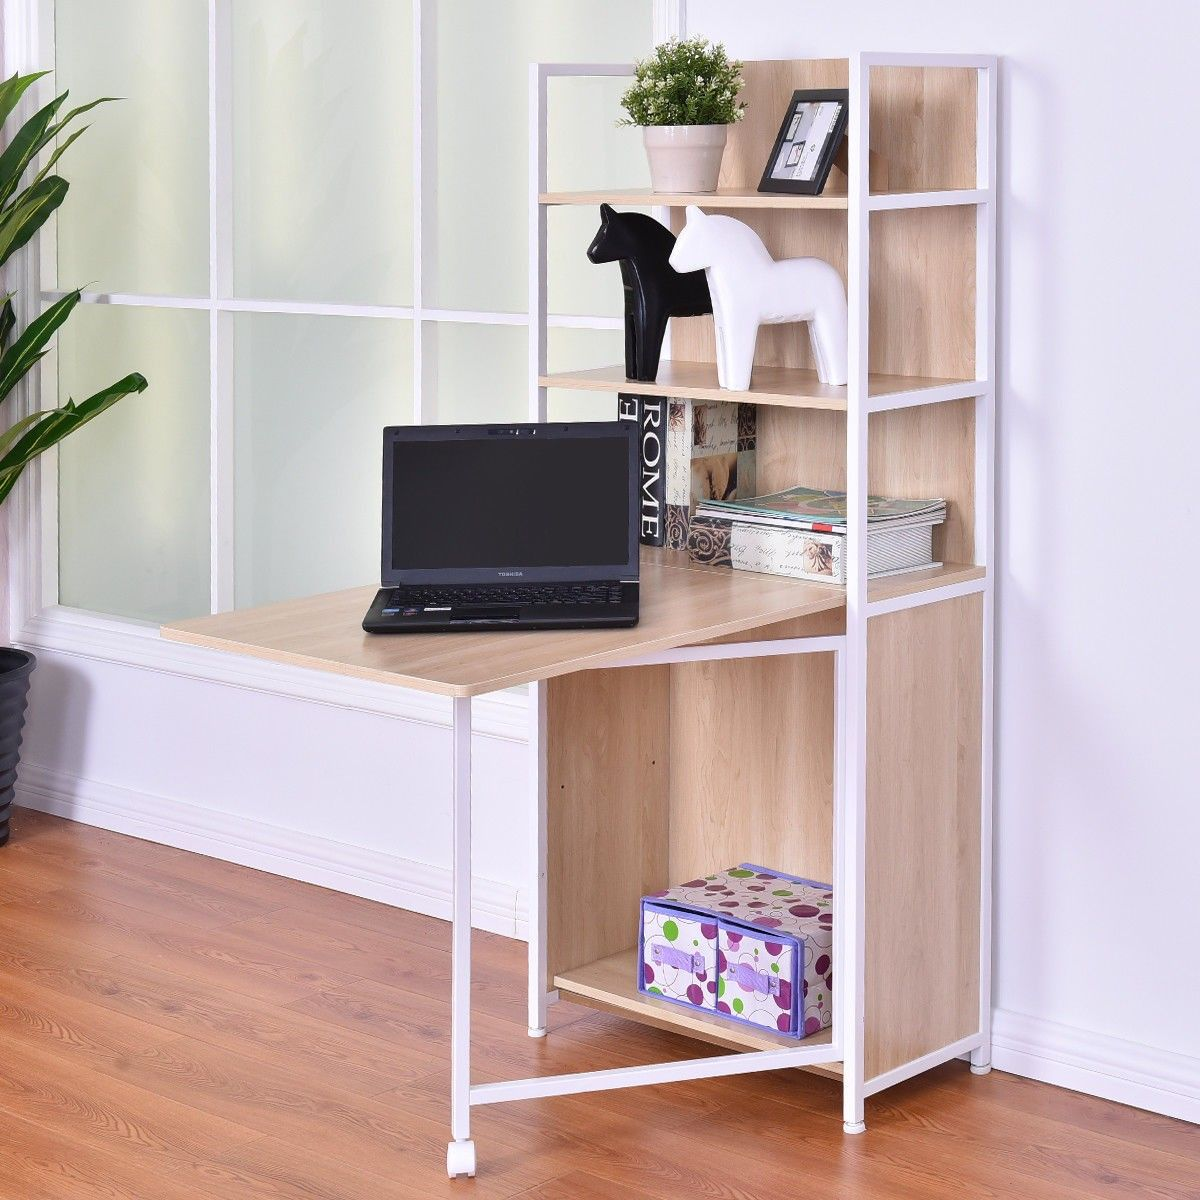 2 In 1 Foldable Convertible Desk With Cabinet And Bookshelf Convertible Desk Bookshelf Desk Computer Desk With Shelves